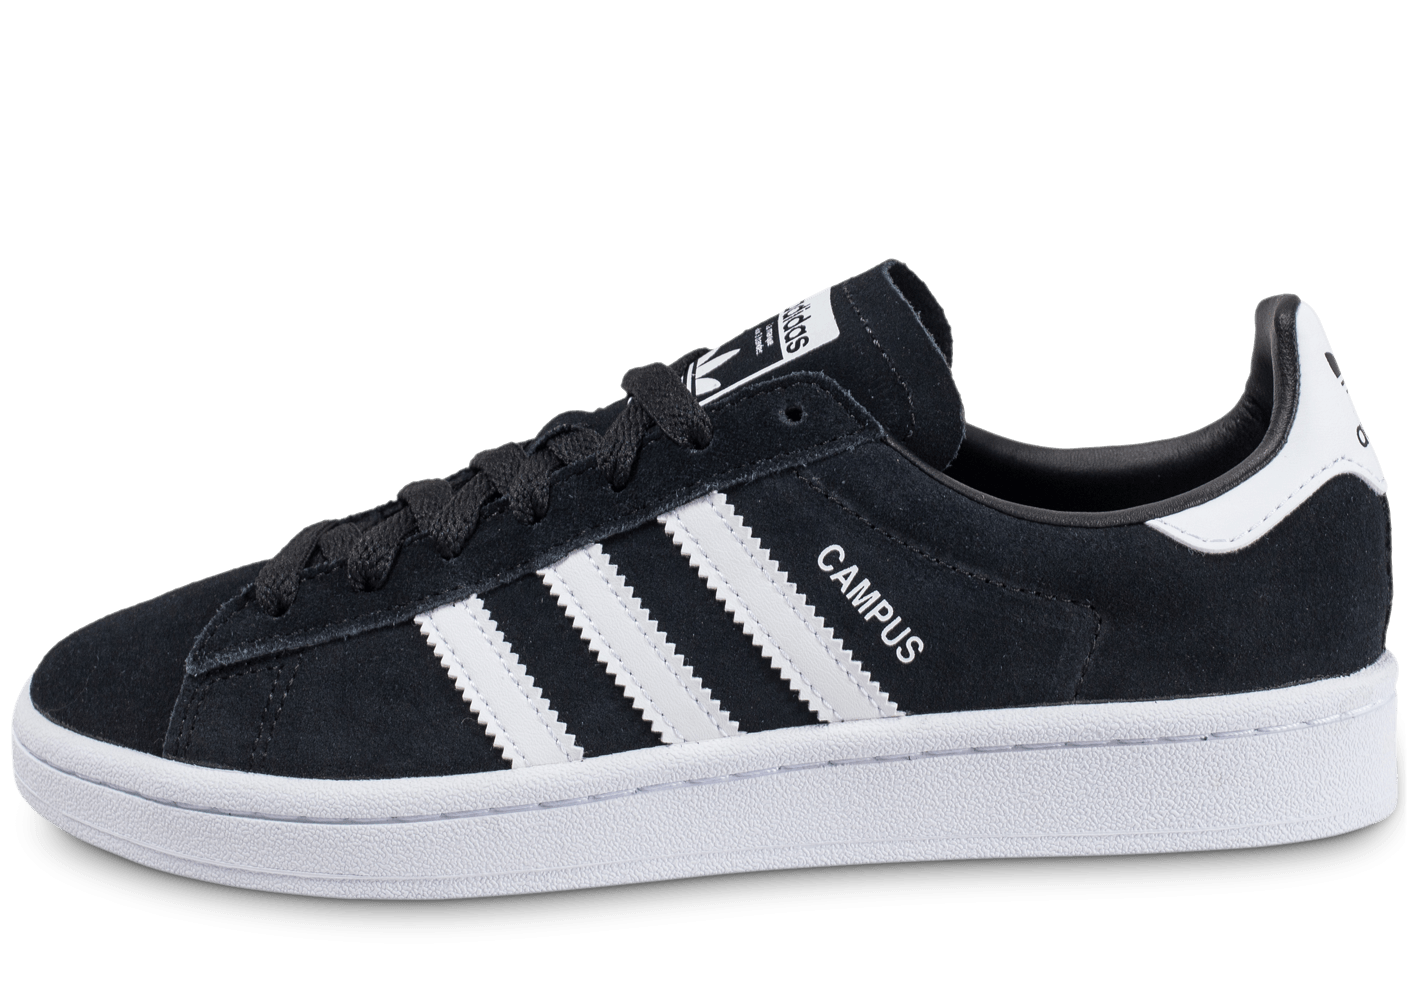 Chaussures Adidas Campus noires Fashion homme VvpGUU